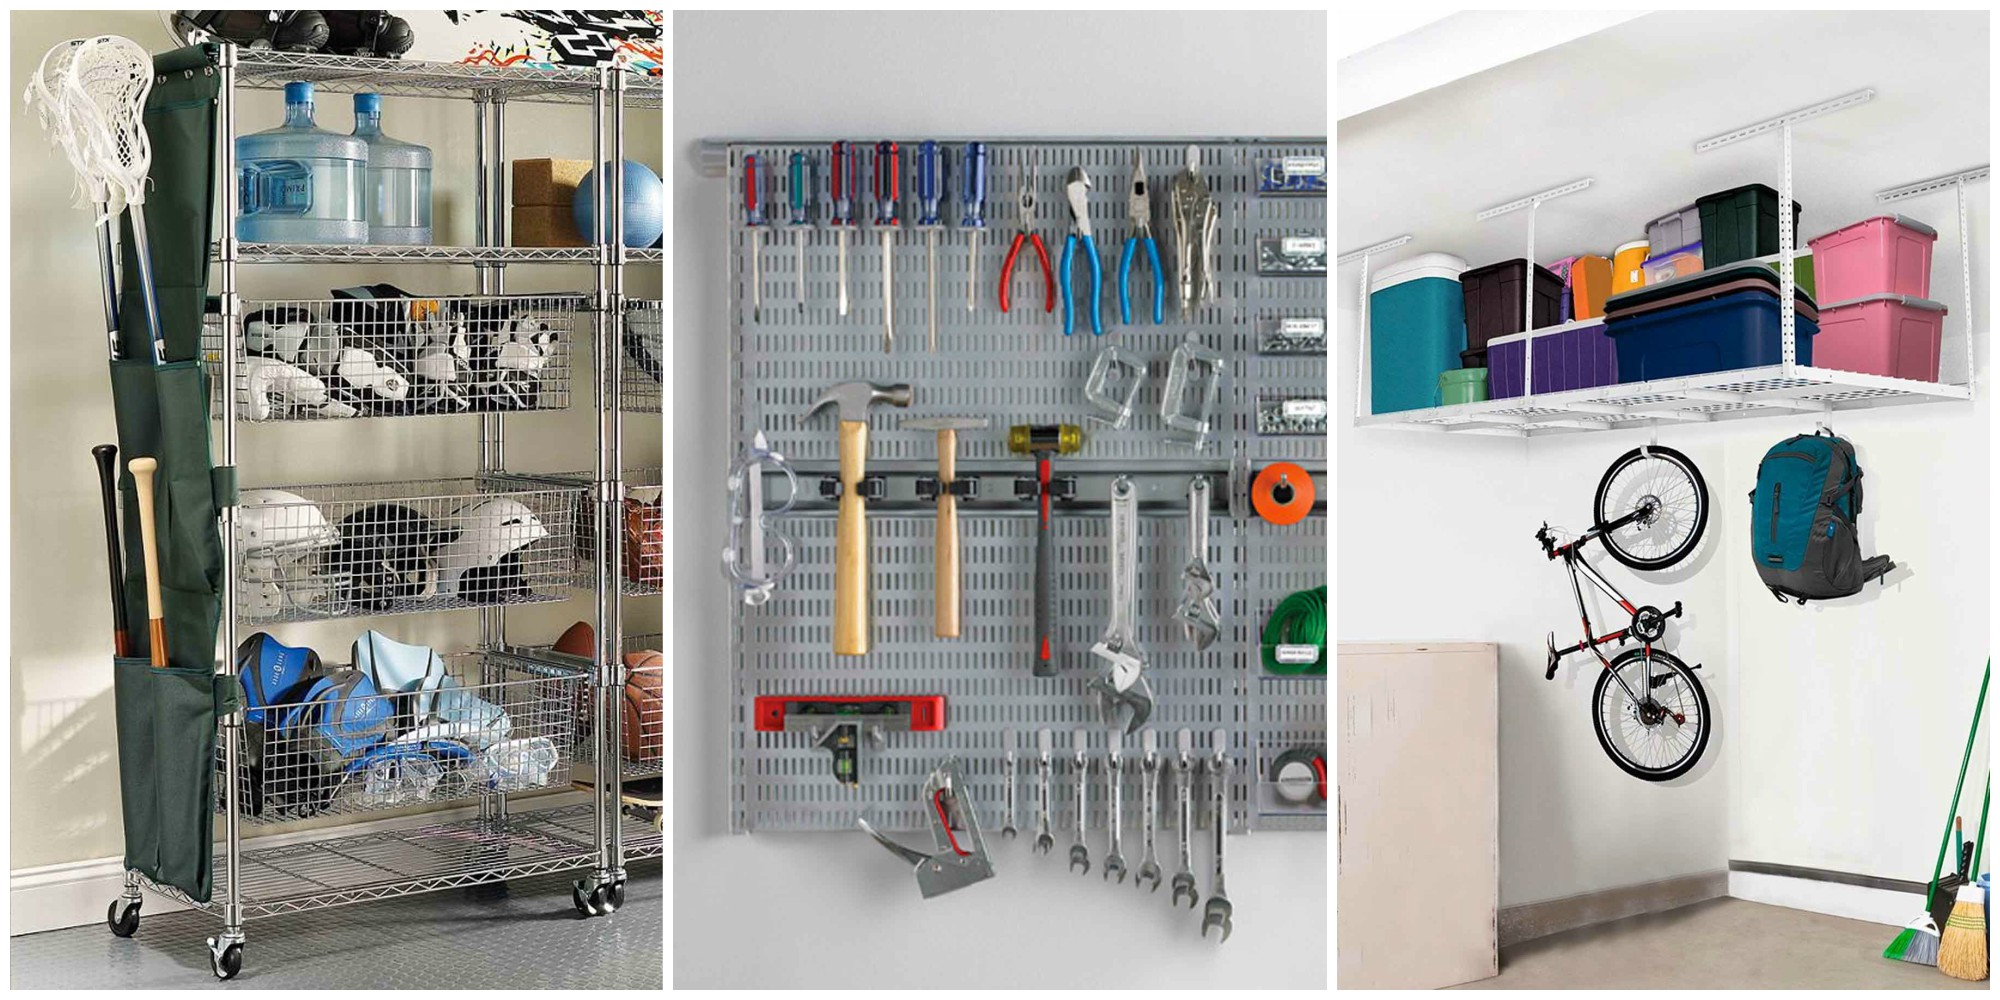 garage organization ideas - 24 Garage Organization Ideas Storage Solutions and Tips